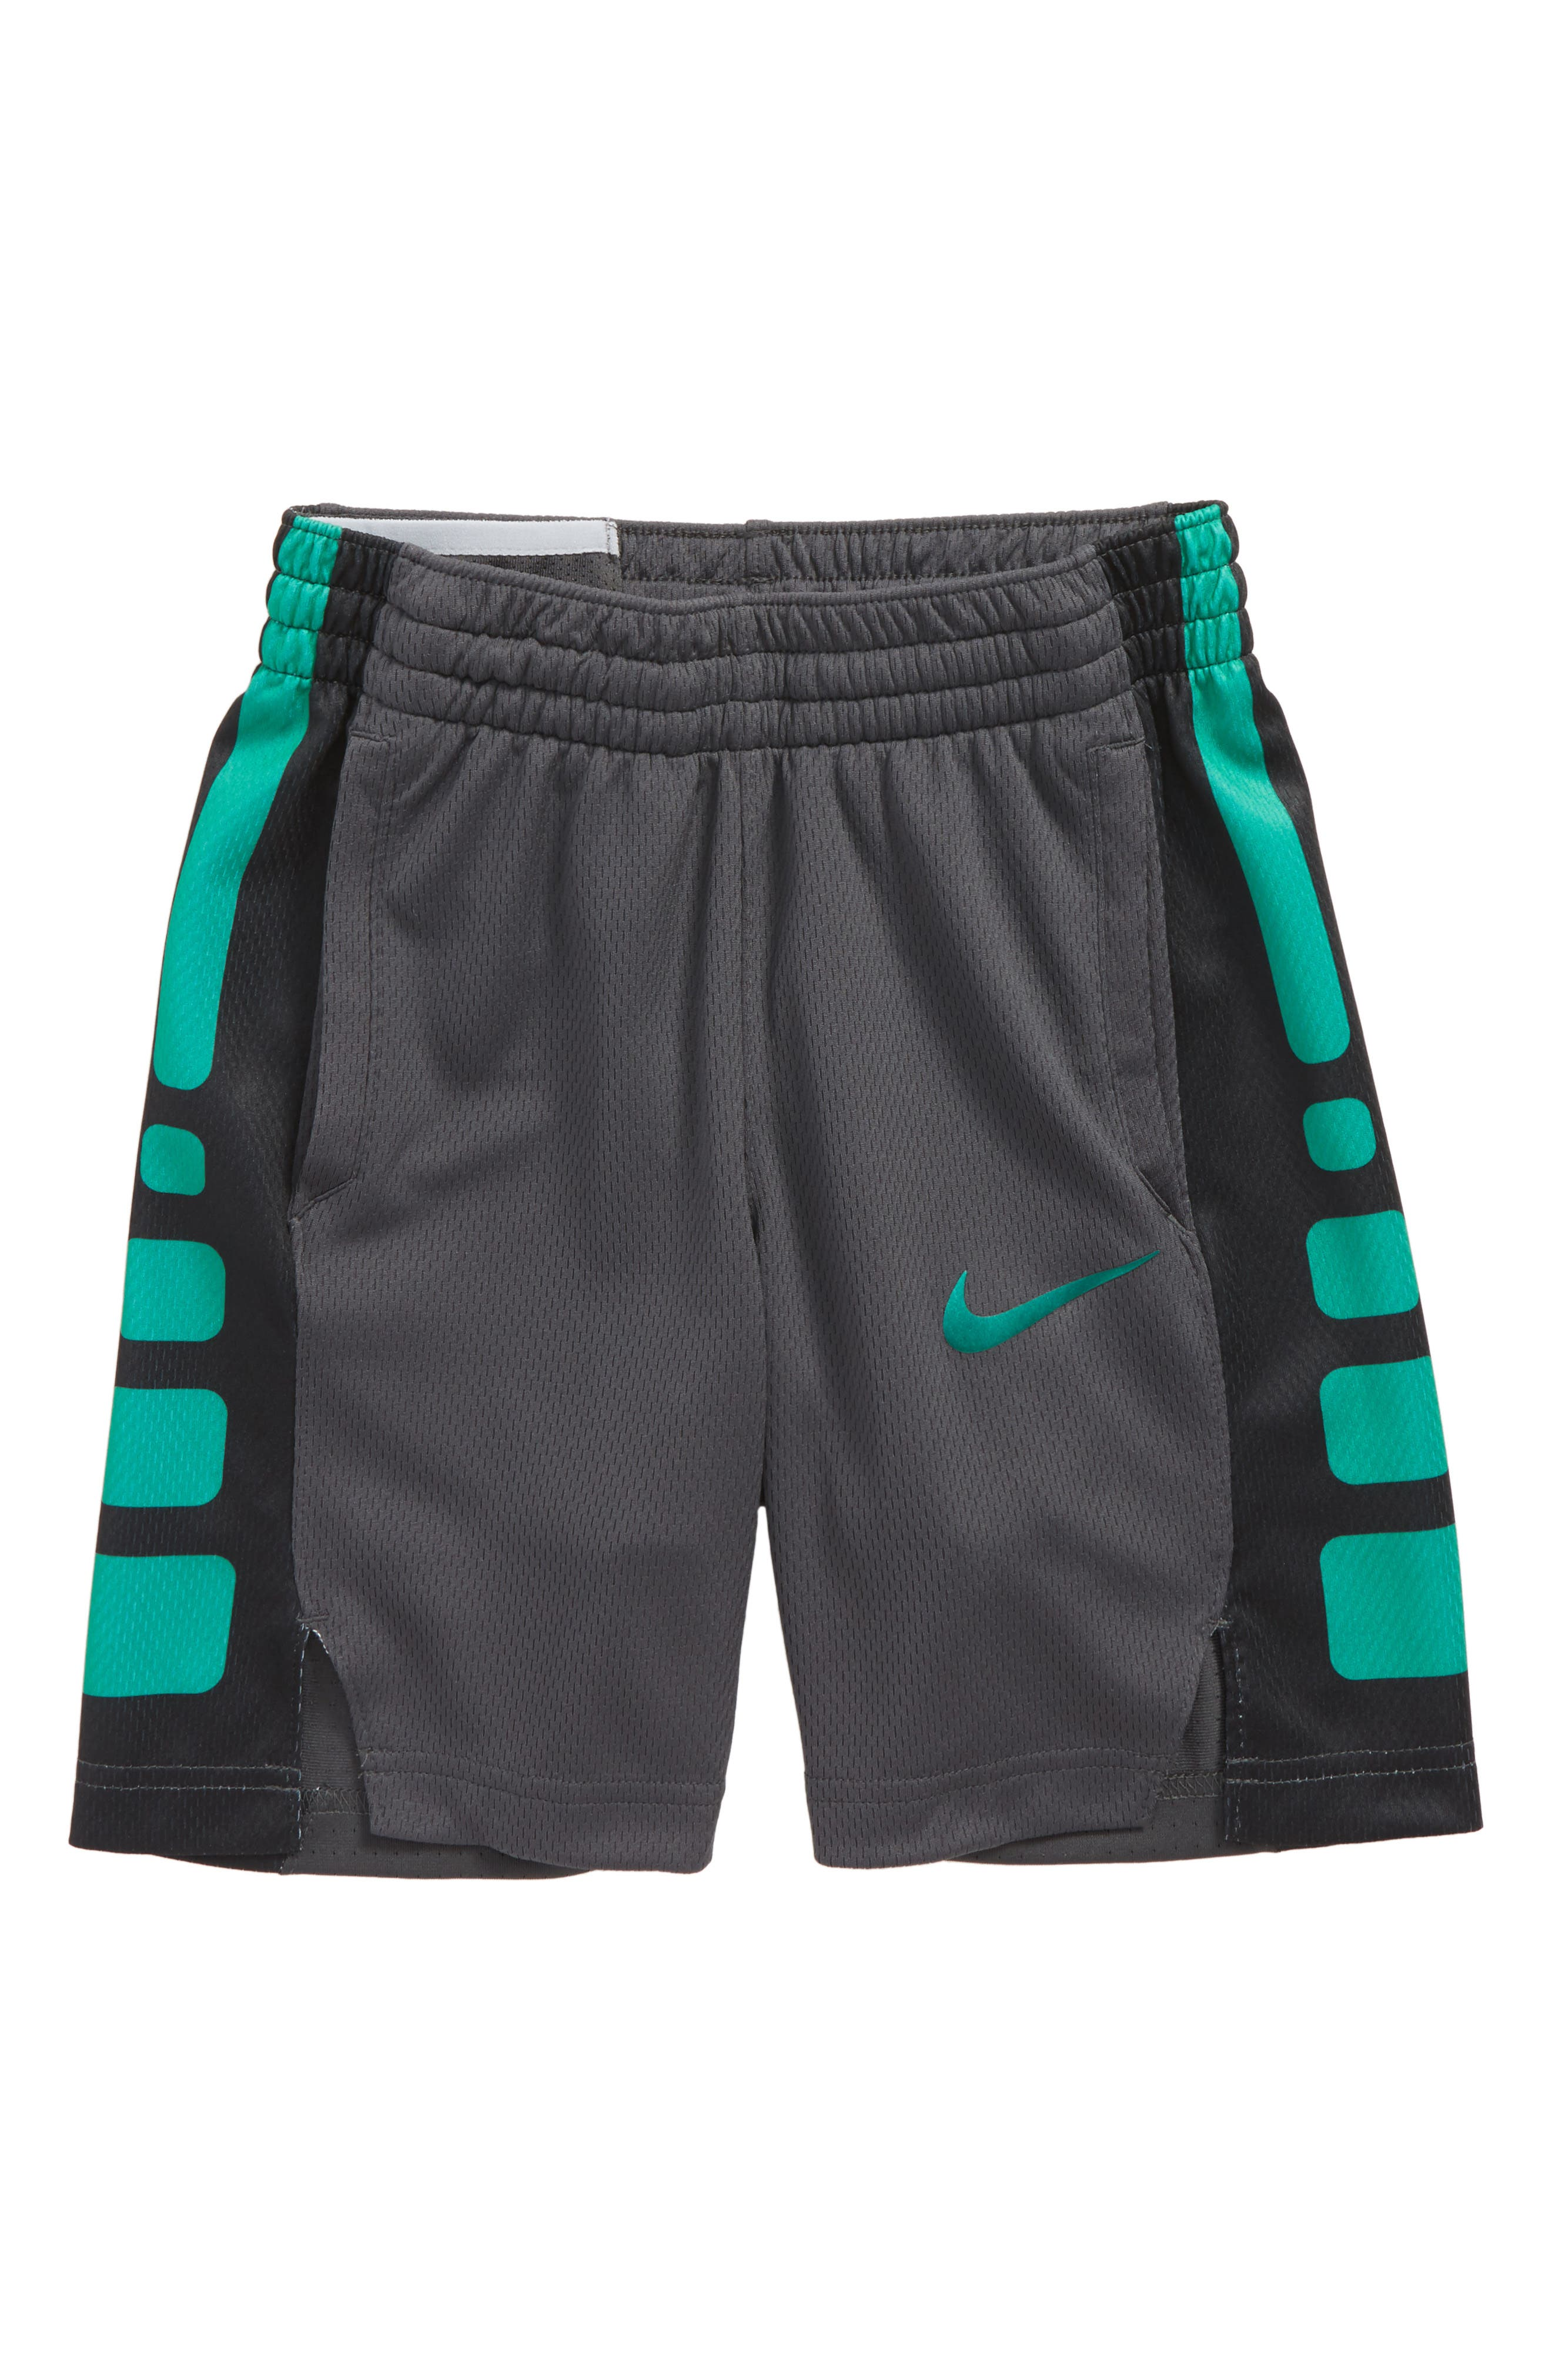 Dry Elite Basketball Shorts,                             Main thumbnail 30, color,